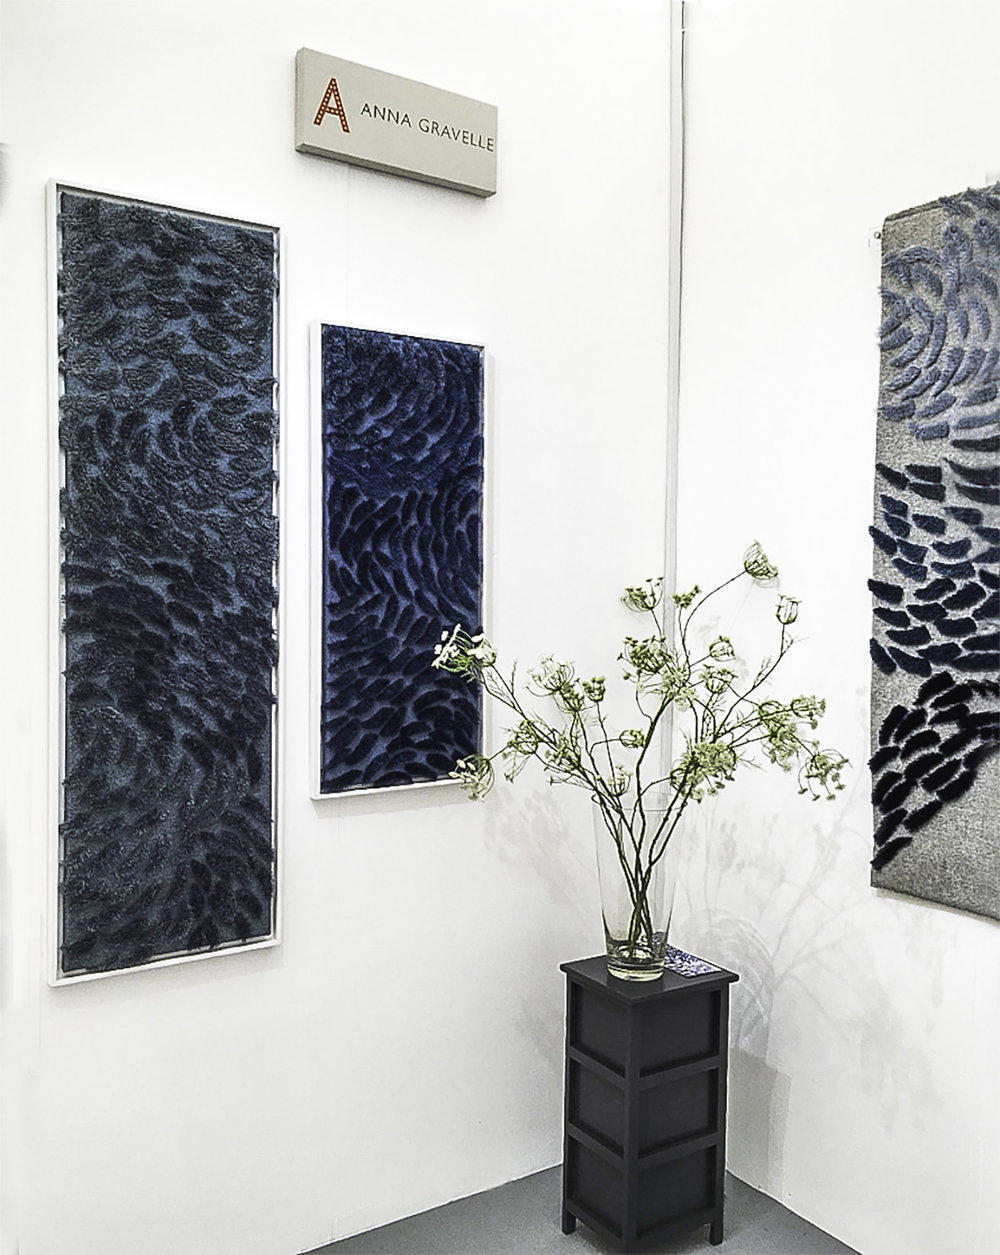 Anna Gravelle's 'Murmurations' panels at Decorex International 2018